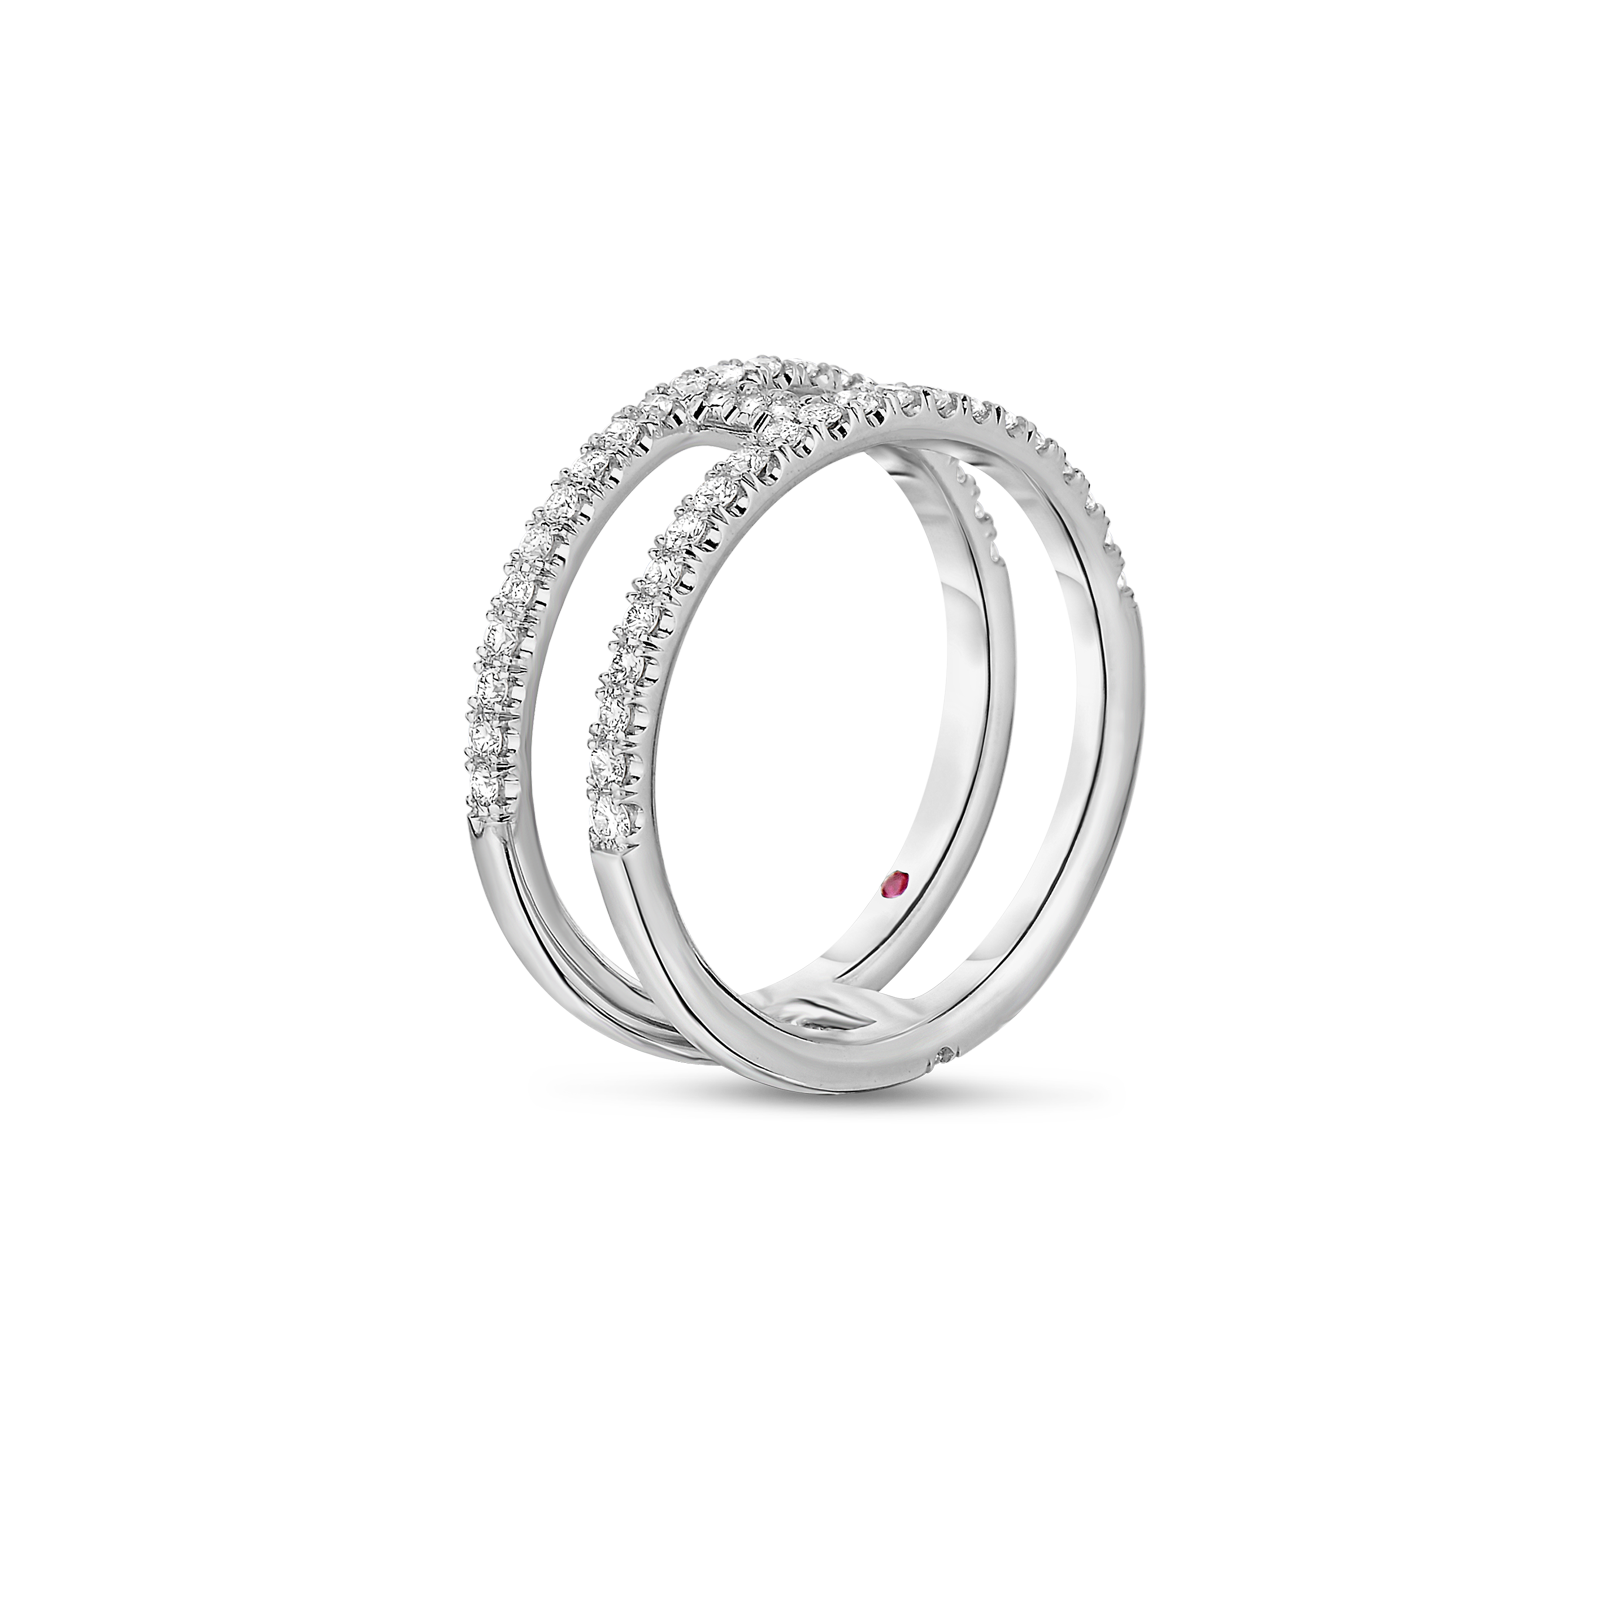 Roberto-Coin-Classic-Diamond-18K-White-Gold-2-Row-Ring-with-Diamonds-000093AW65X0_SIDE